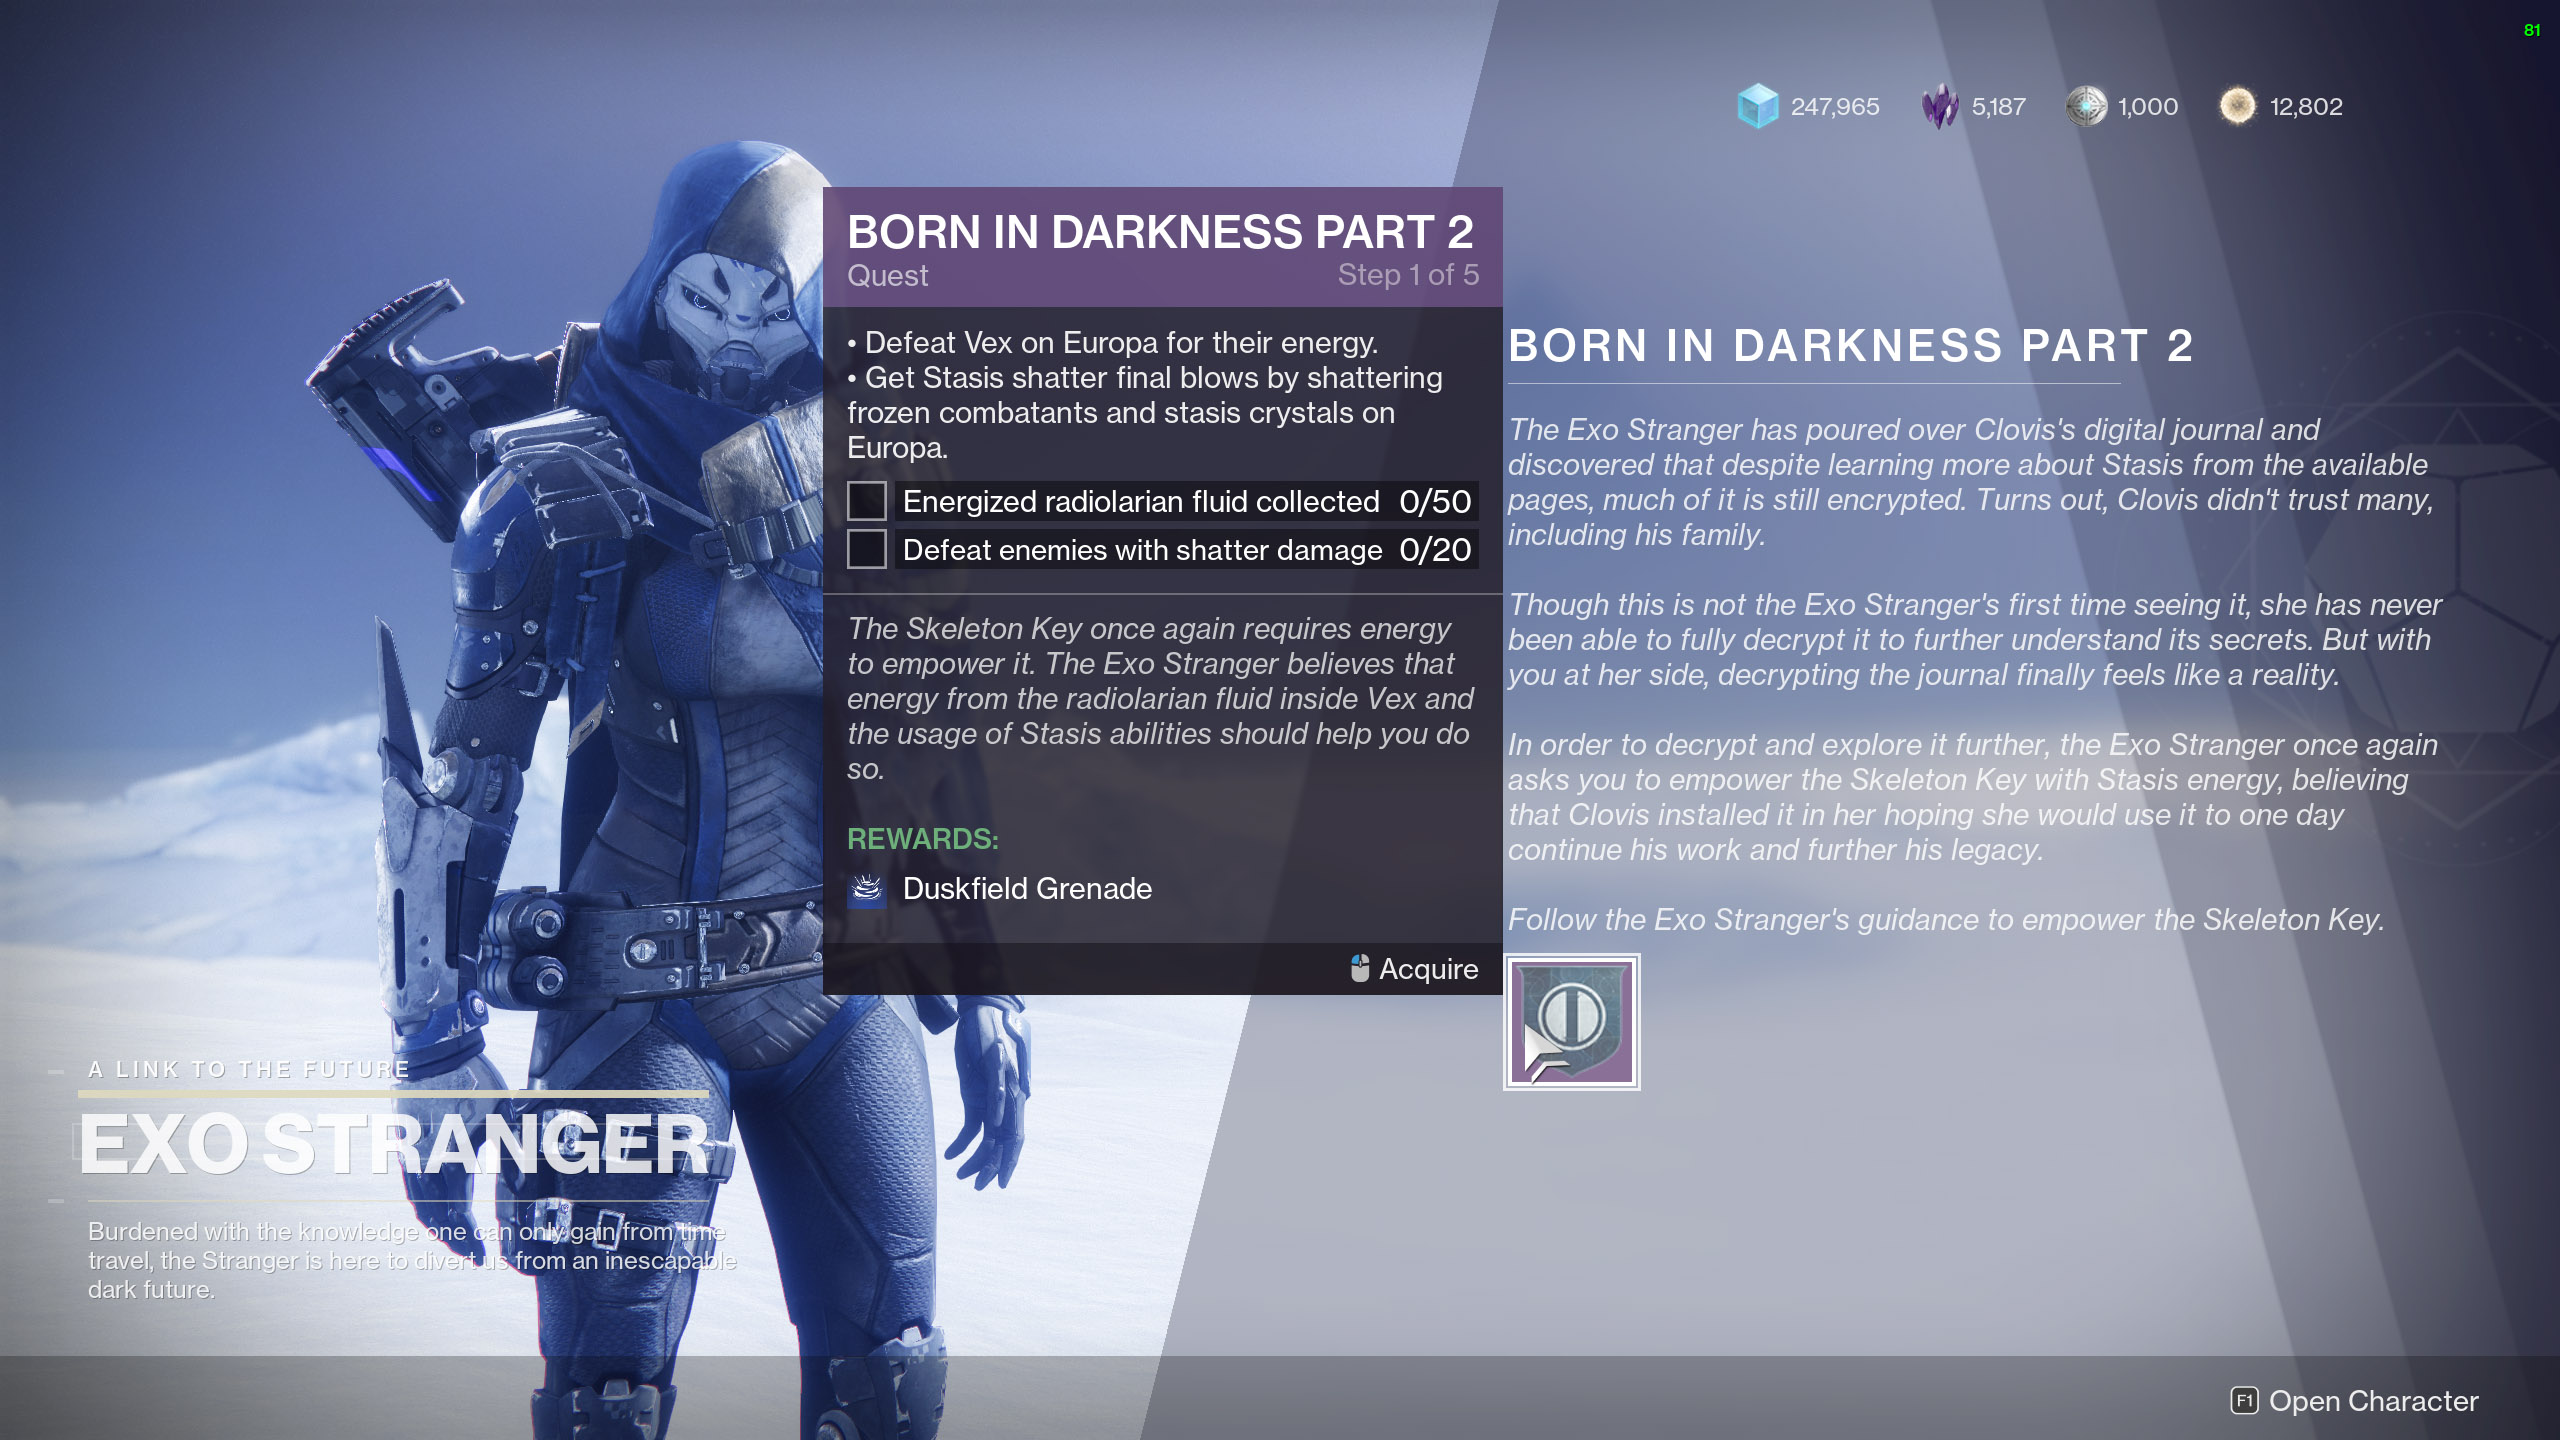 destiny 2 born in darkness part 2